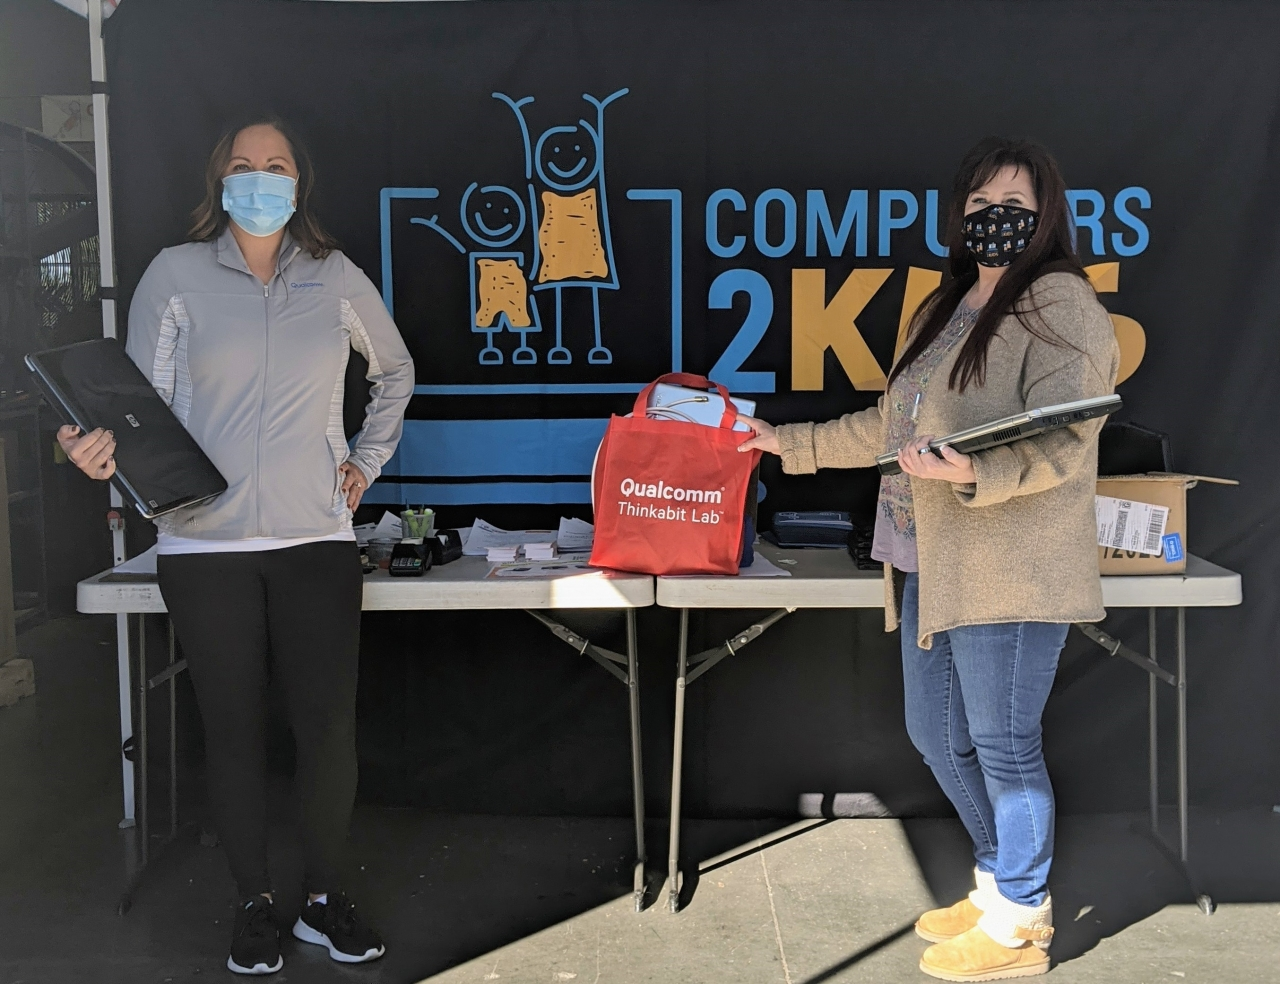 Natalie Dusi (L), Manager of Government Affairs, drops off a tech device donation to Cheri Pierre(R), CEO of Computers 2 Kids, as part of the drive which kicked off on National STEM Day 2020.